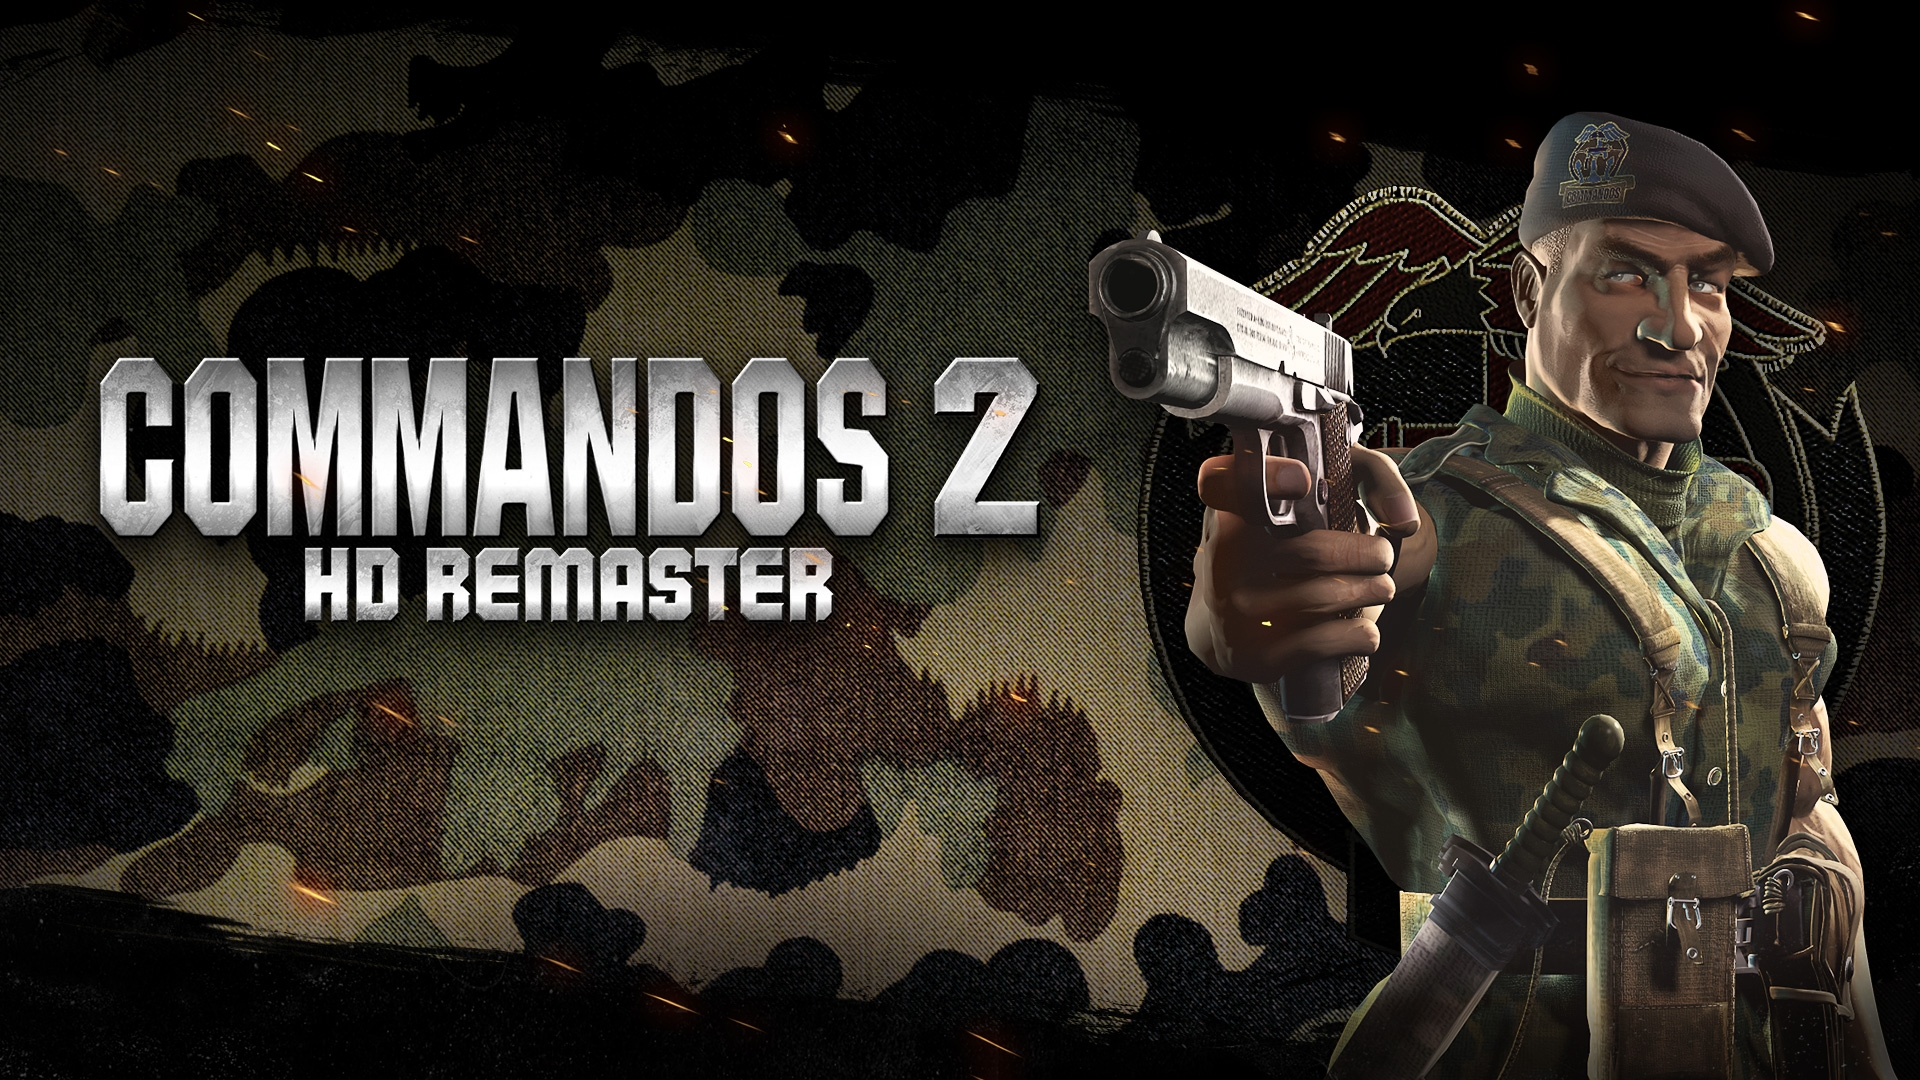 Commandos 2 HD Remaster For Nintendo Switch Launches On December 4